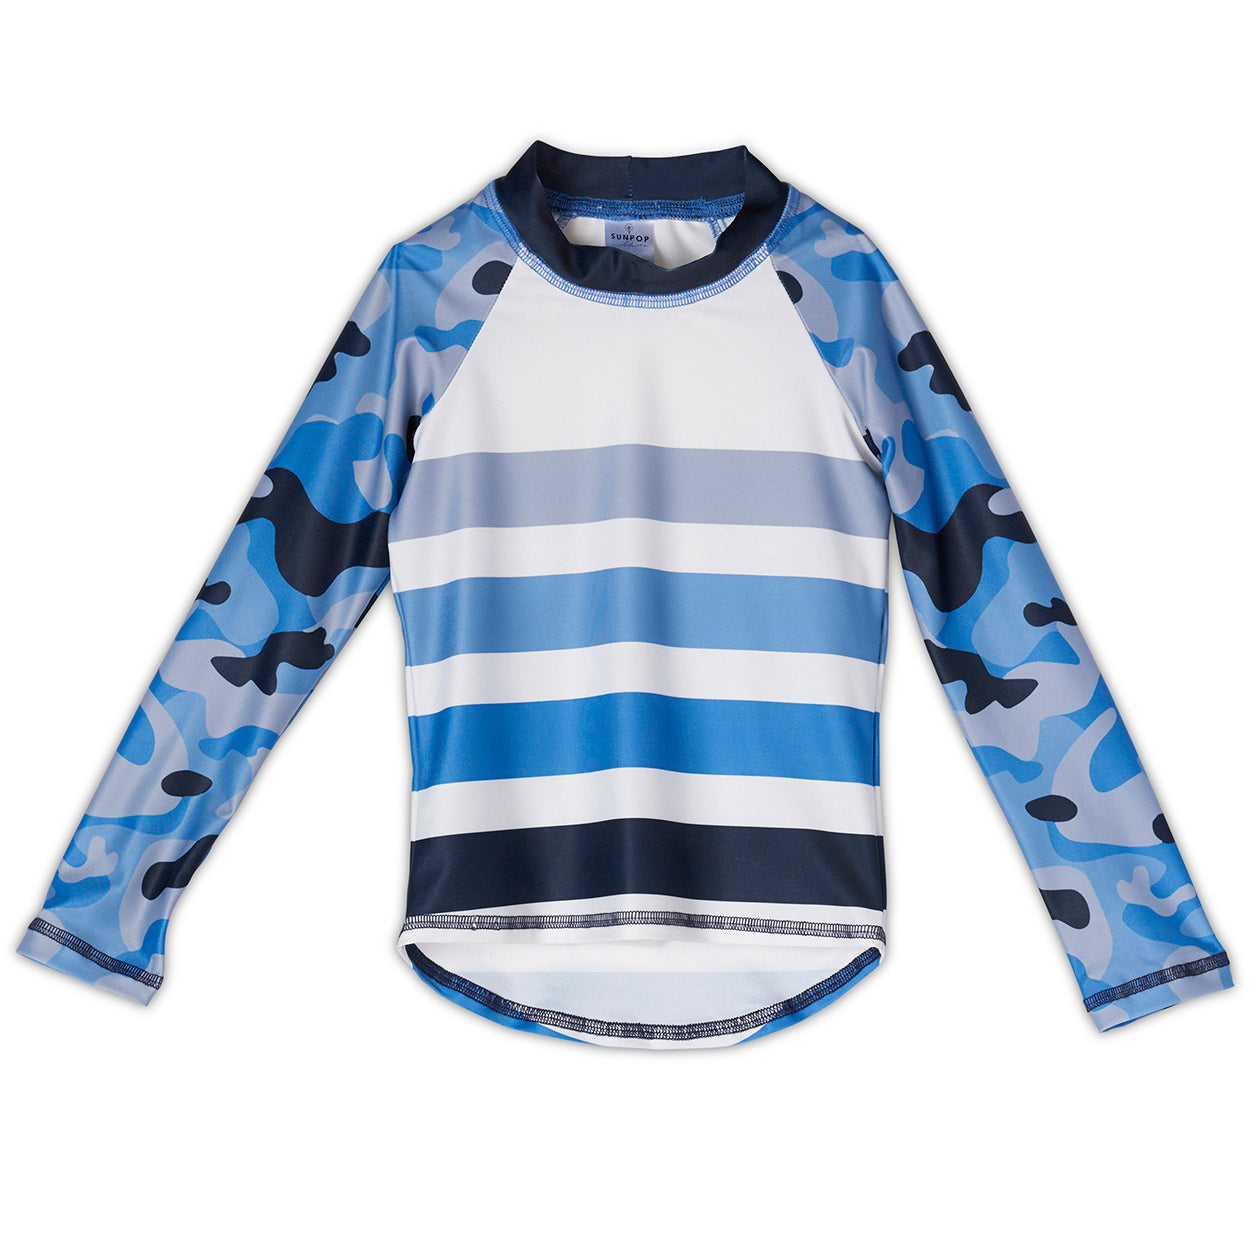 Blue Camo Rash Guard Top Kids Sunpoplife